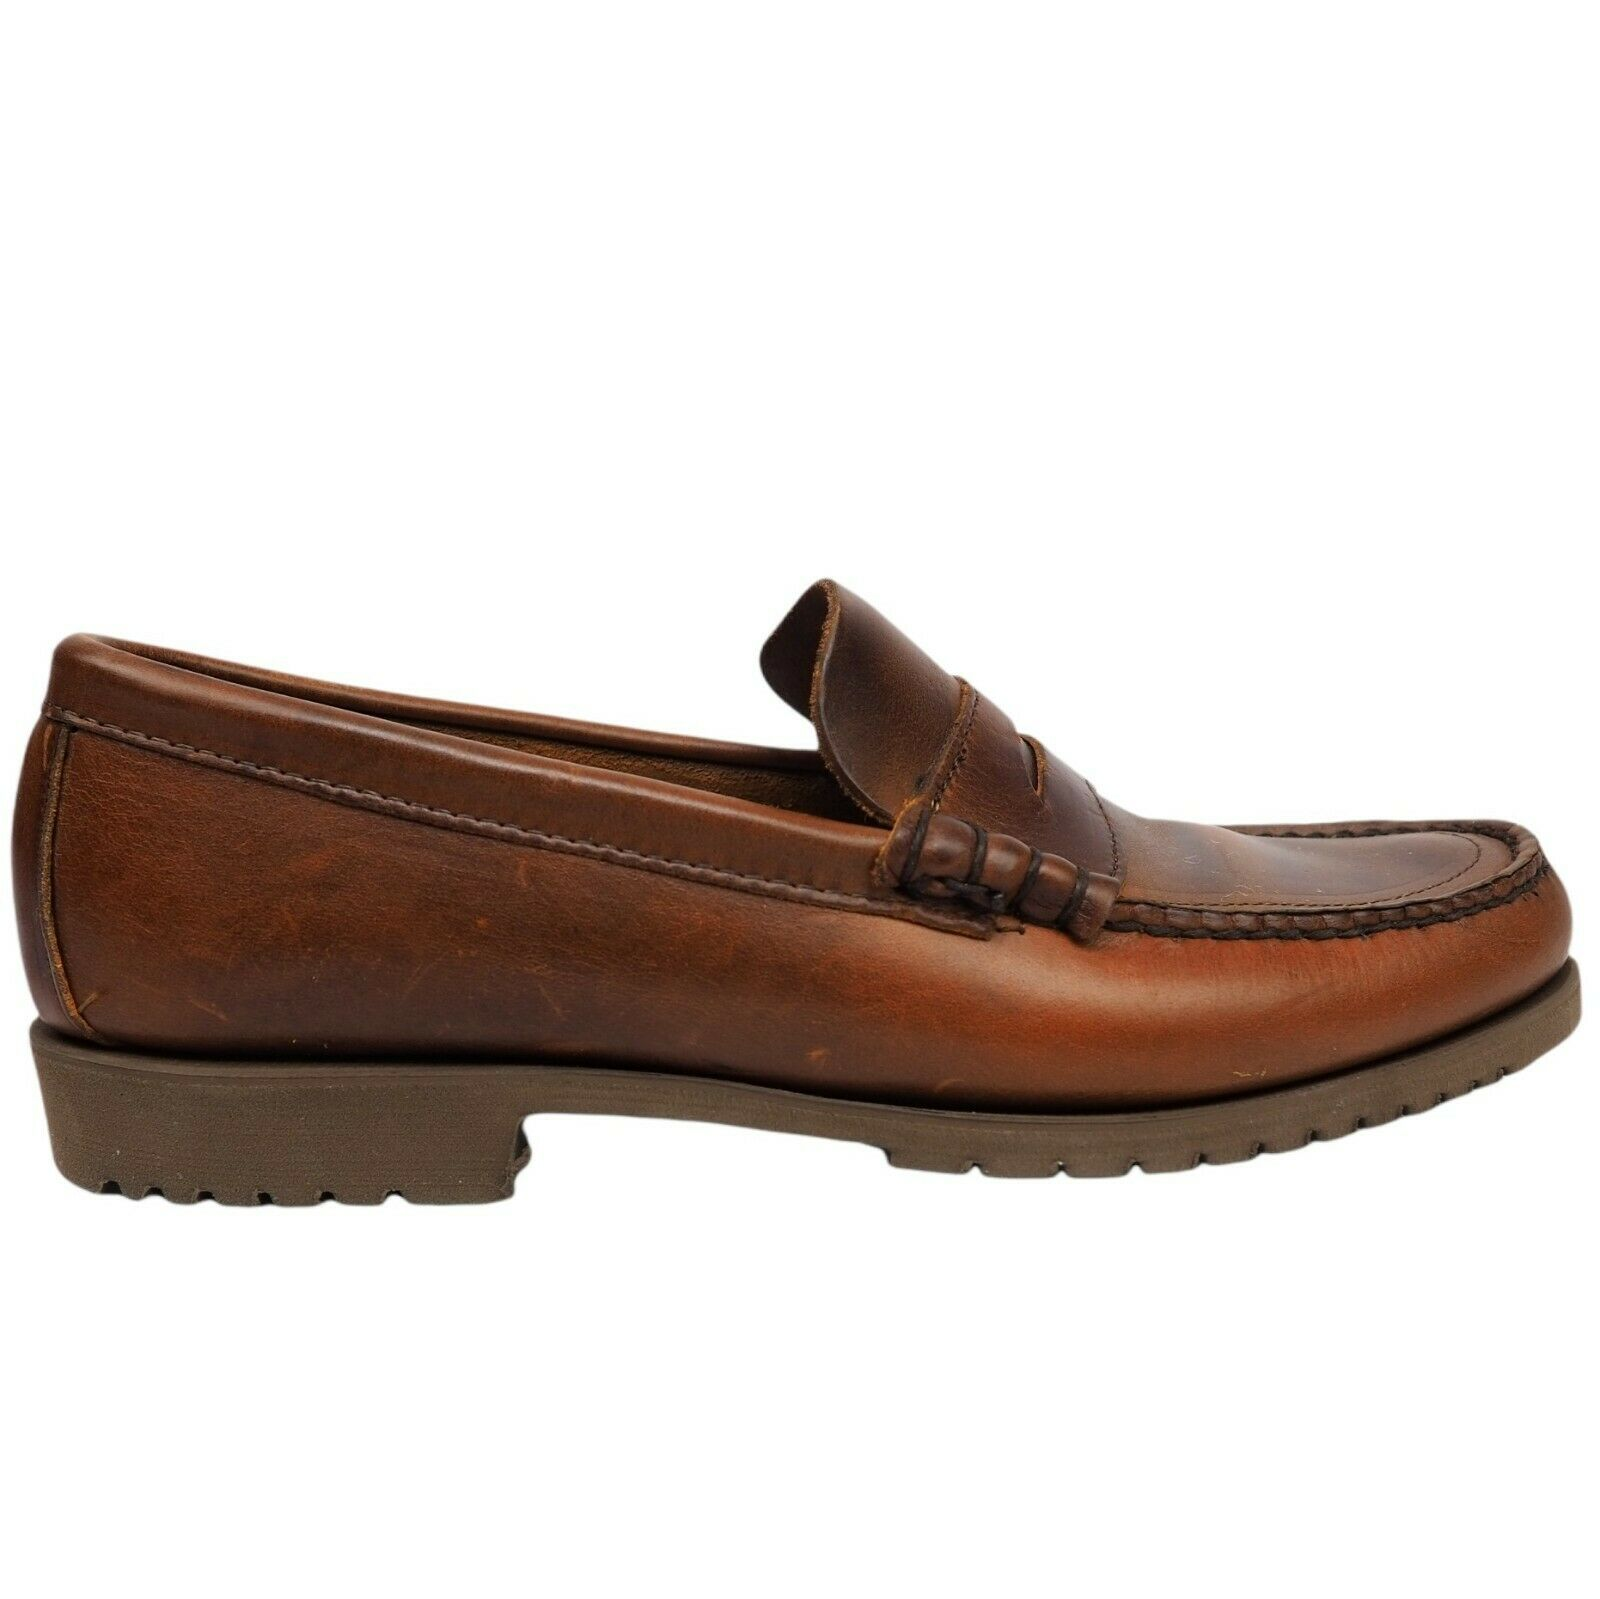 Keith Highlanders Mens Brown Leather Casual Slip On Penny Loafers Shoes Size 8 D